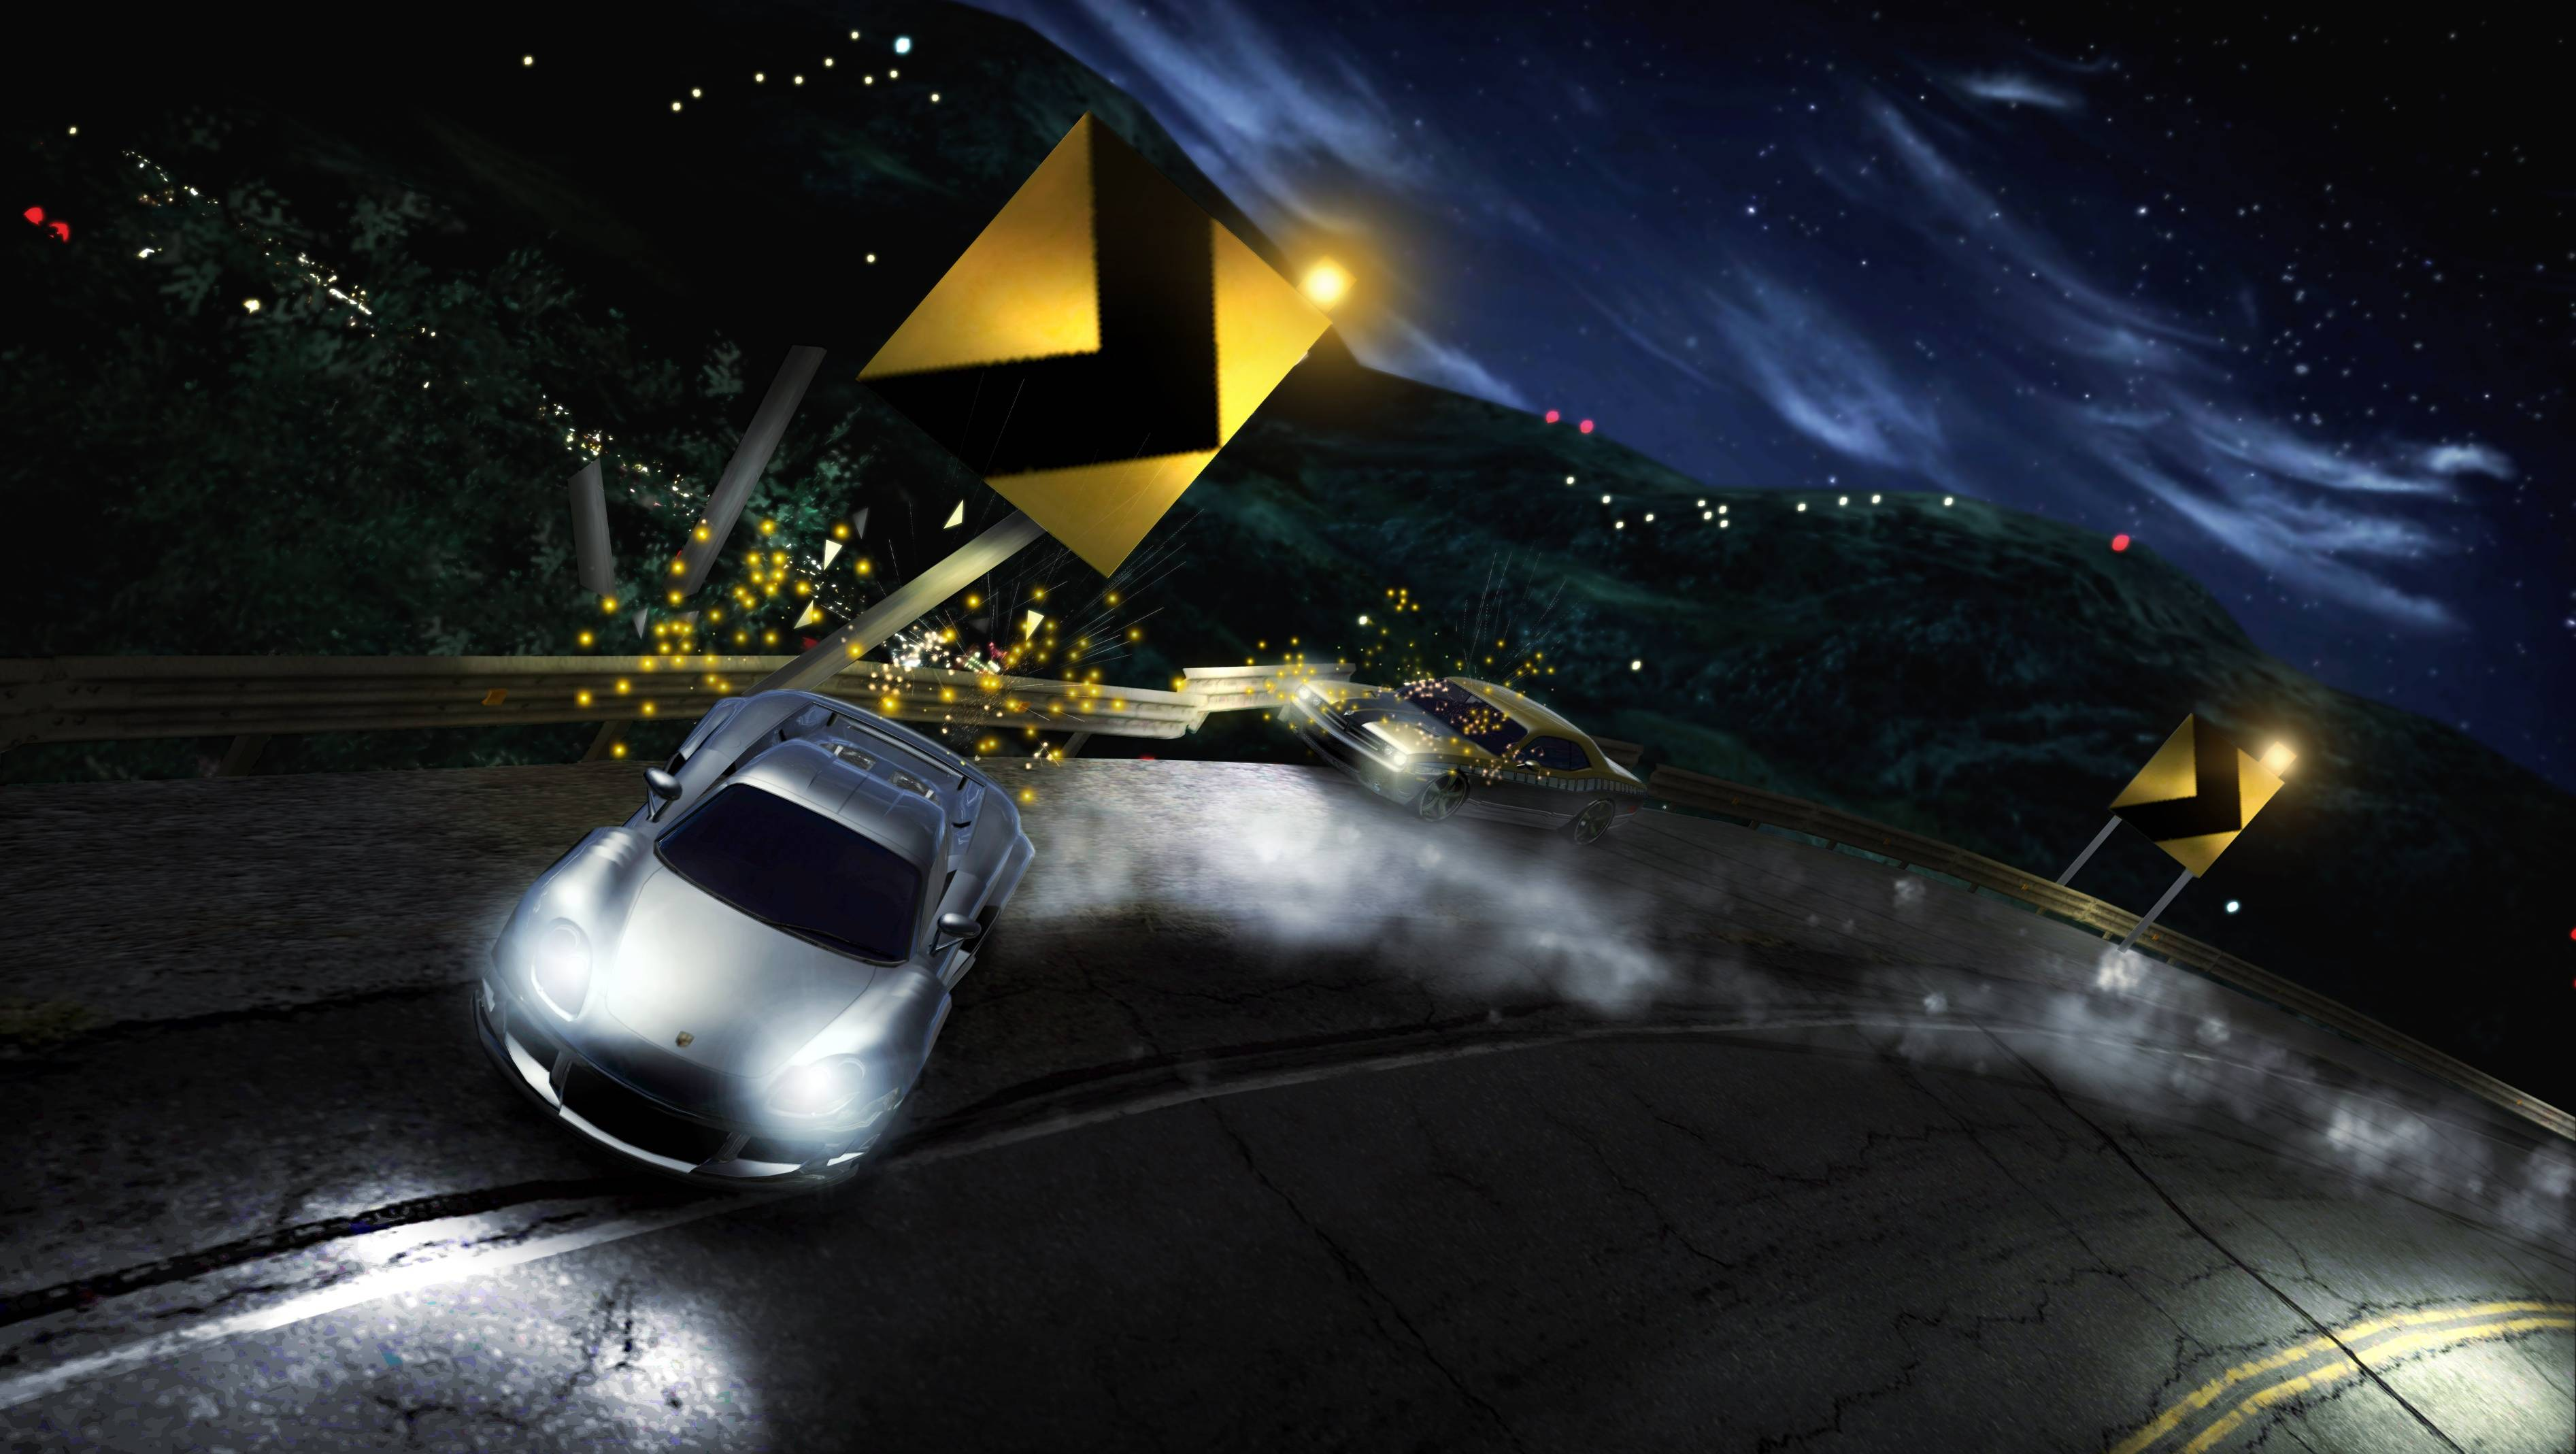 Free Download Need For Speed Carbon Wallpapers 3787x2137 For